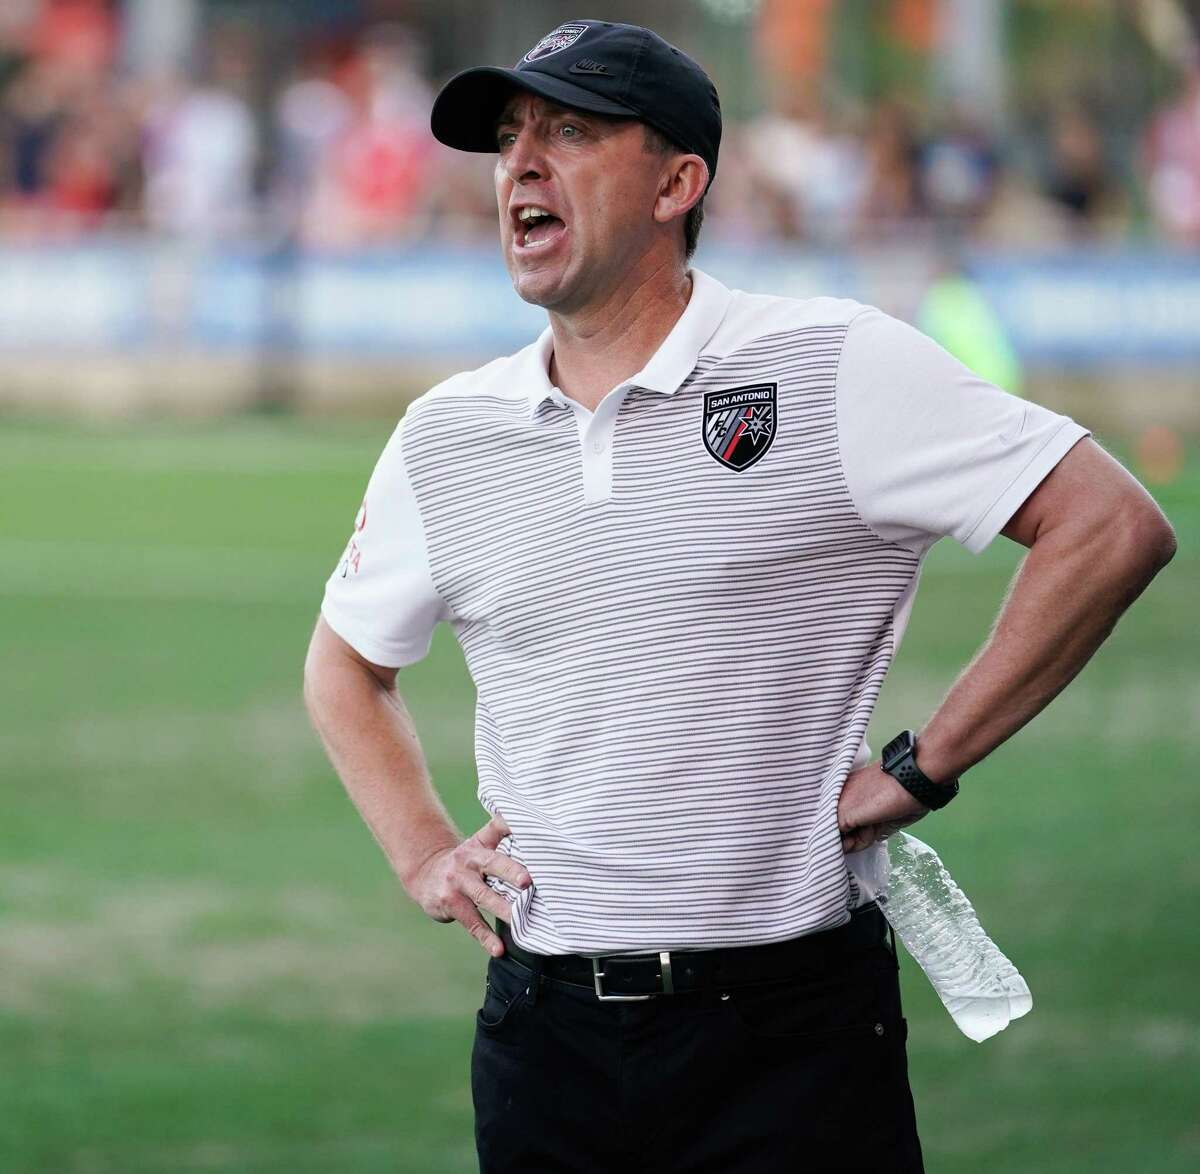 Coach Darren Powell and San Antonio FC captured their first road win of the season with Wednesday's 3-1 decision over El Paso Locomotive FC.